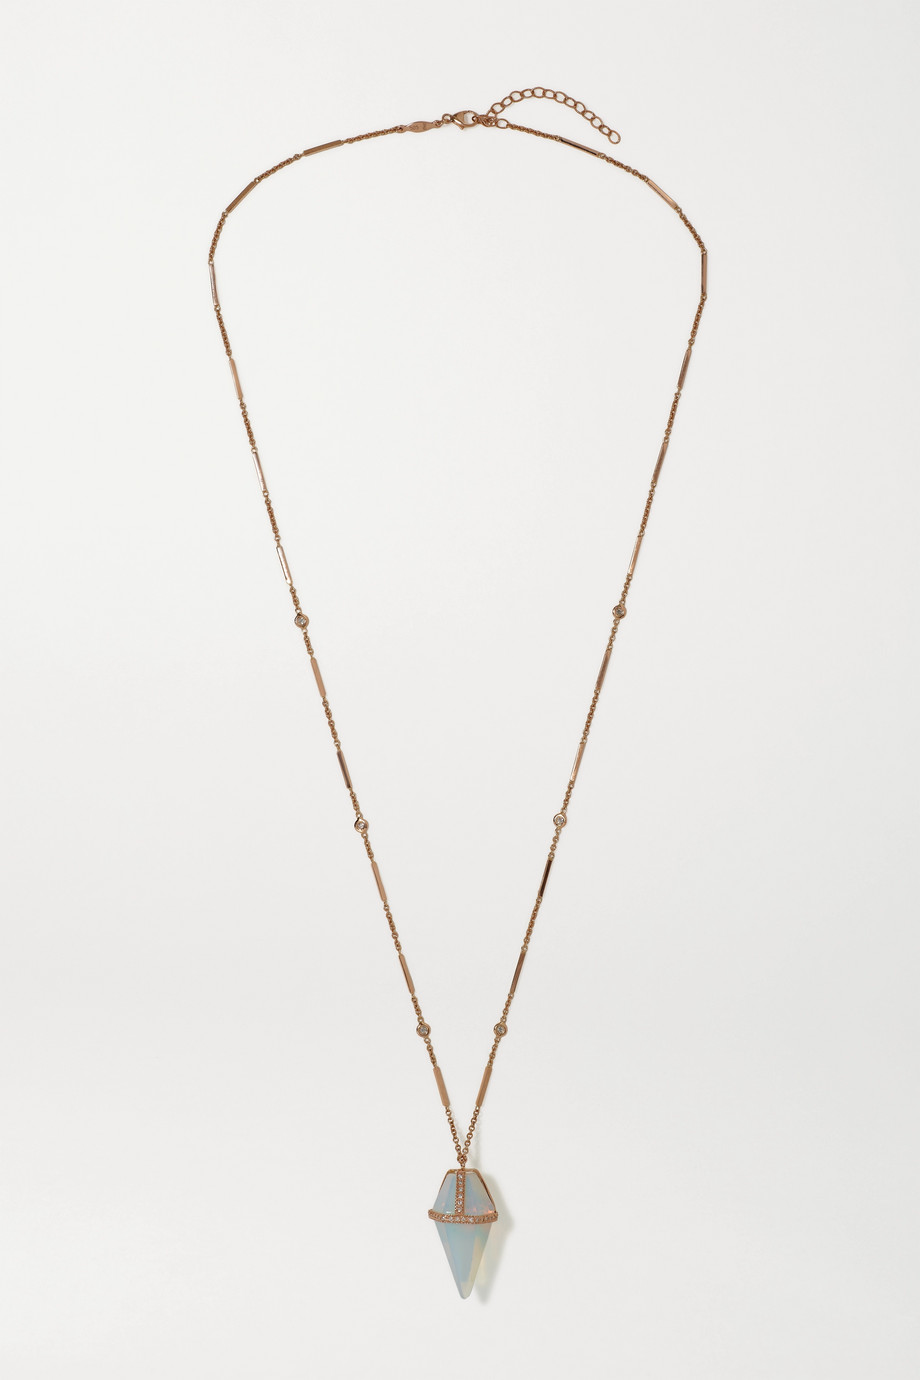 JACQUIE AICHE Pendulum 14-karat rose gold, opal and diamond necklace